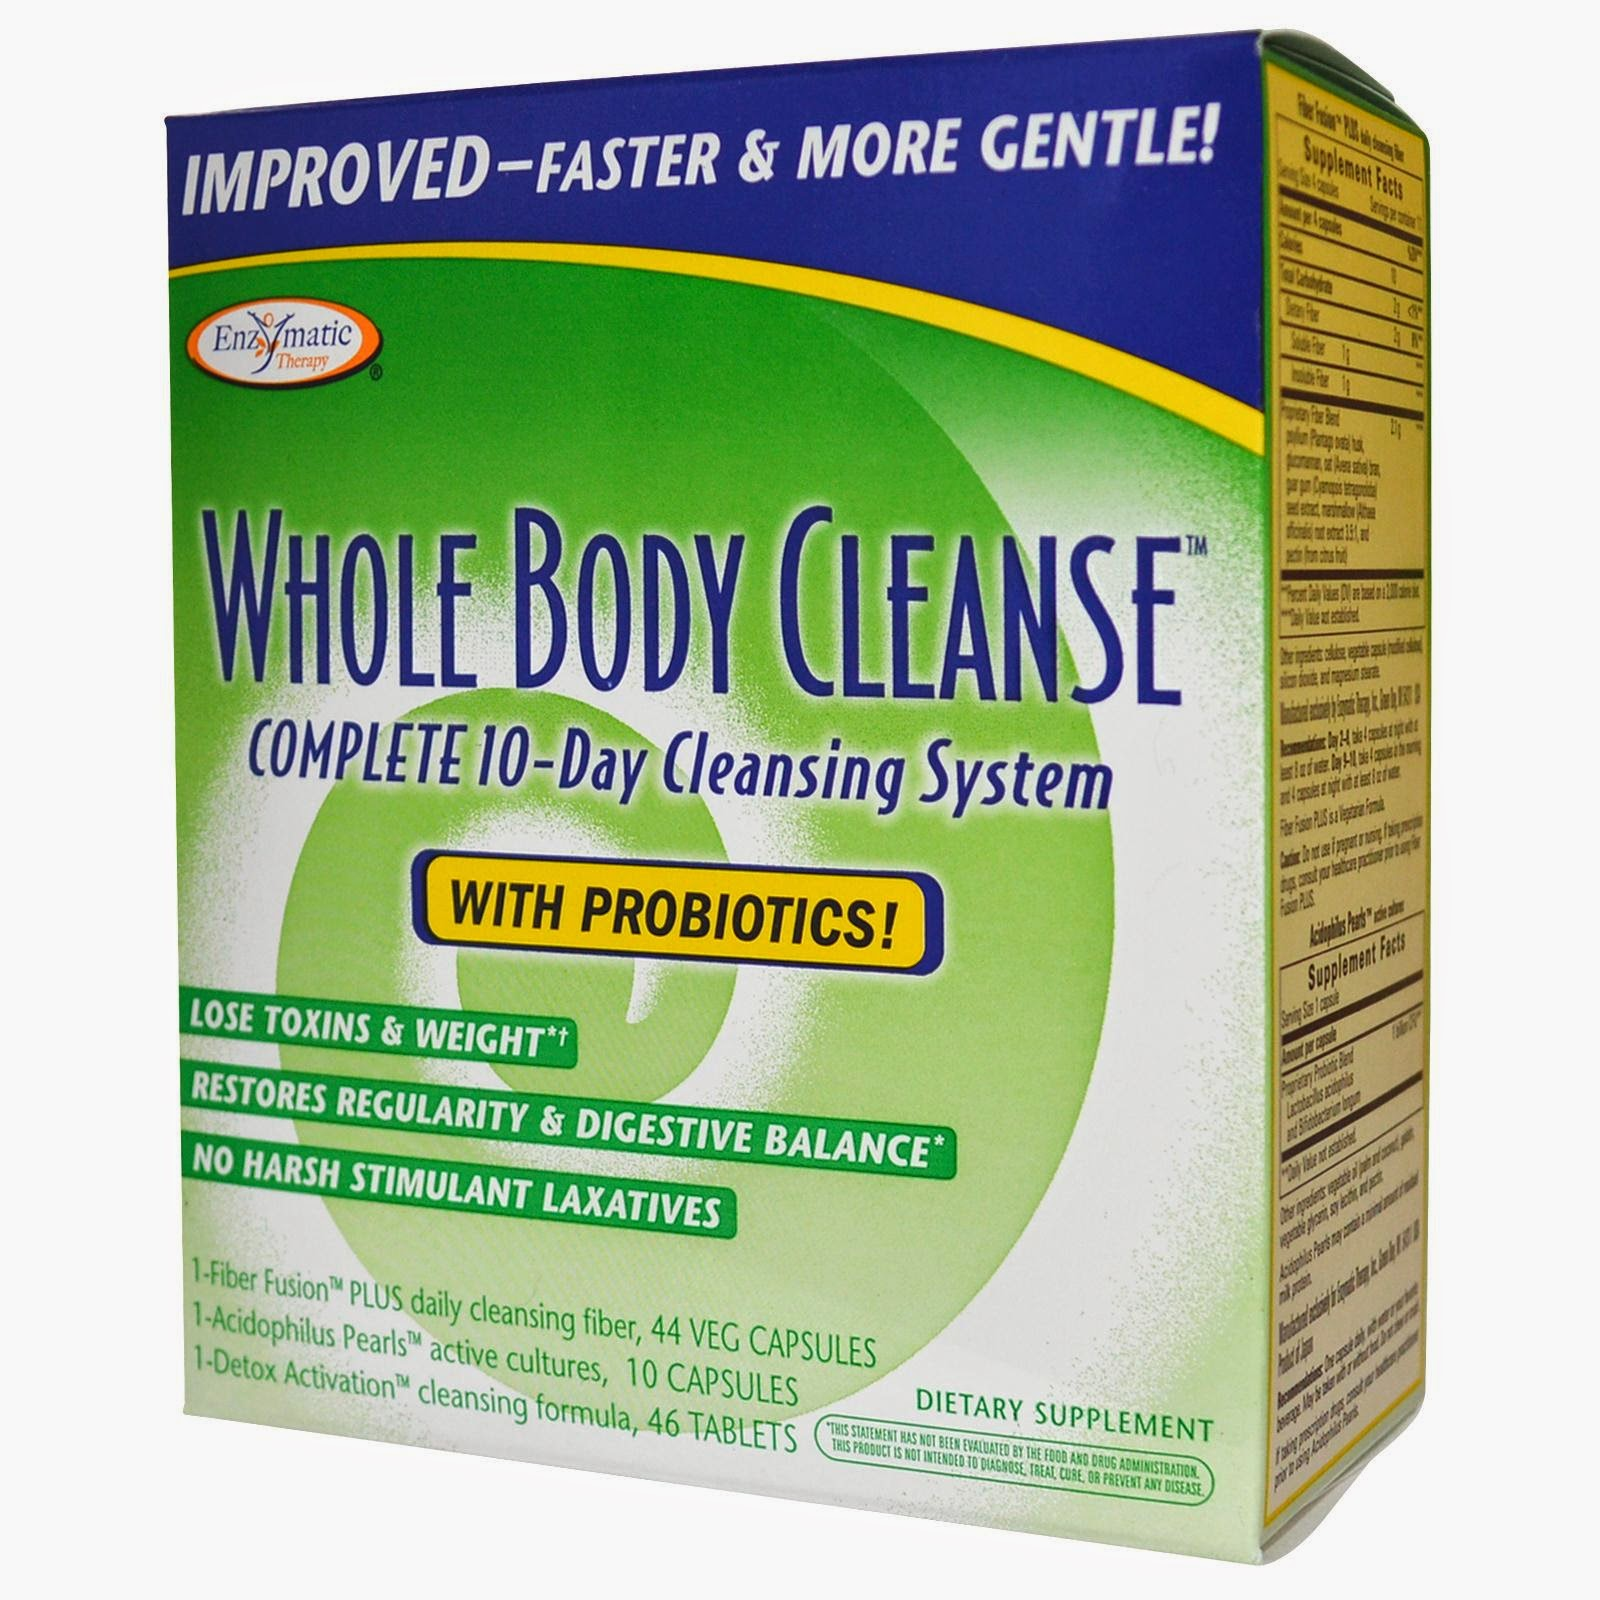 http://www.enzymatictherapy.com/Products/Detox-and-Cleansing/Whole-Body-cleanse/08450-Whole-Body-Cleanse.aspx